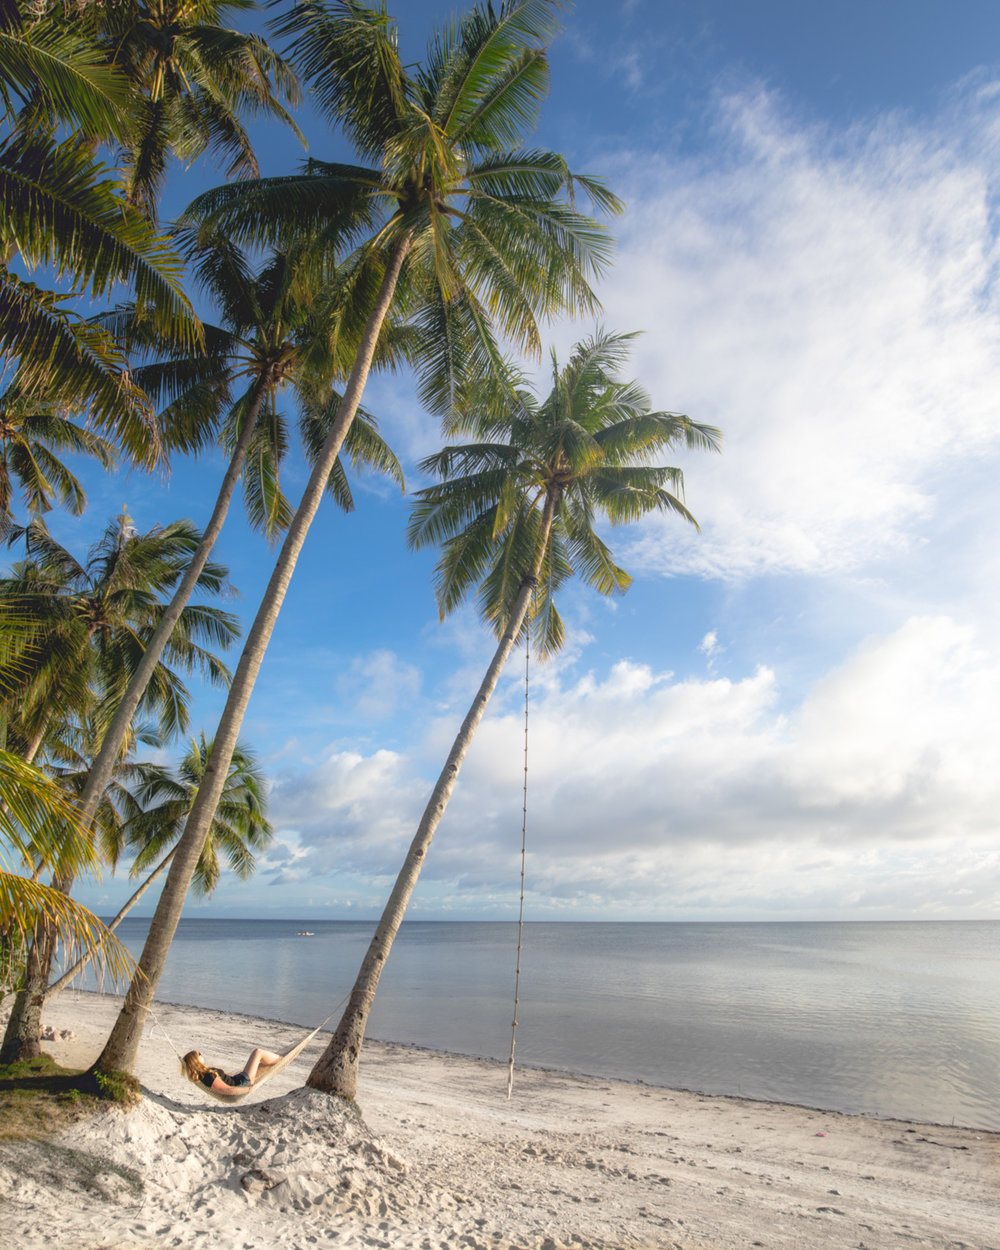 The hammocks at Coral Cay Resort, Siquijor, The Philippines